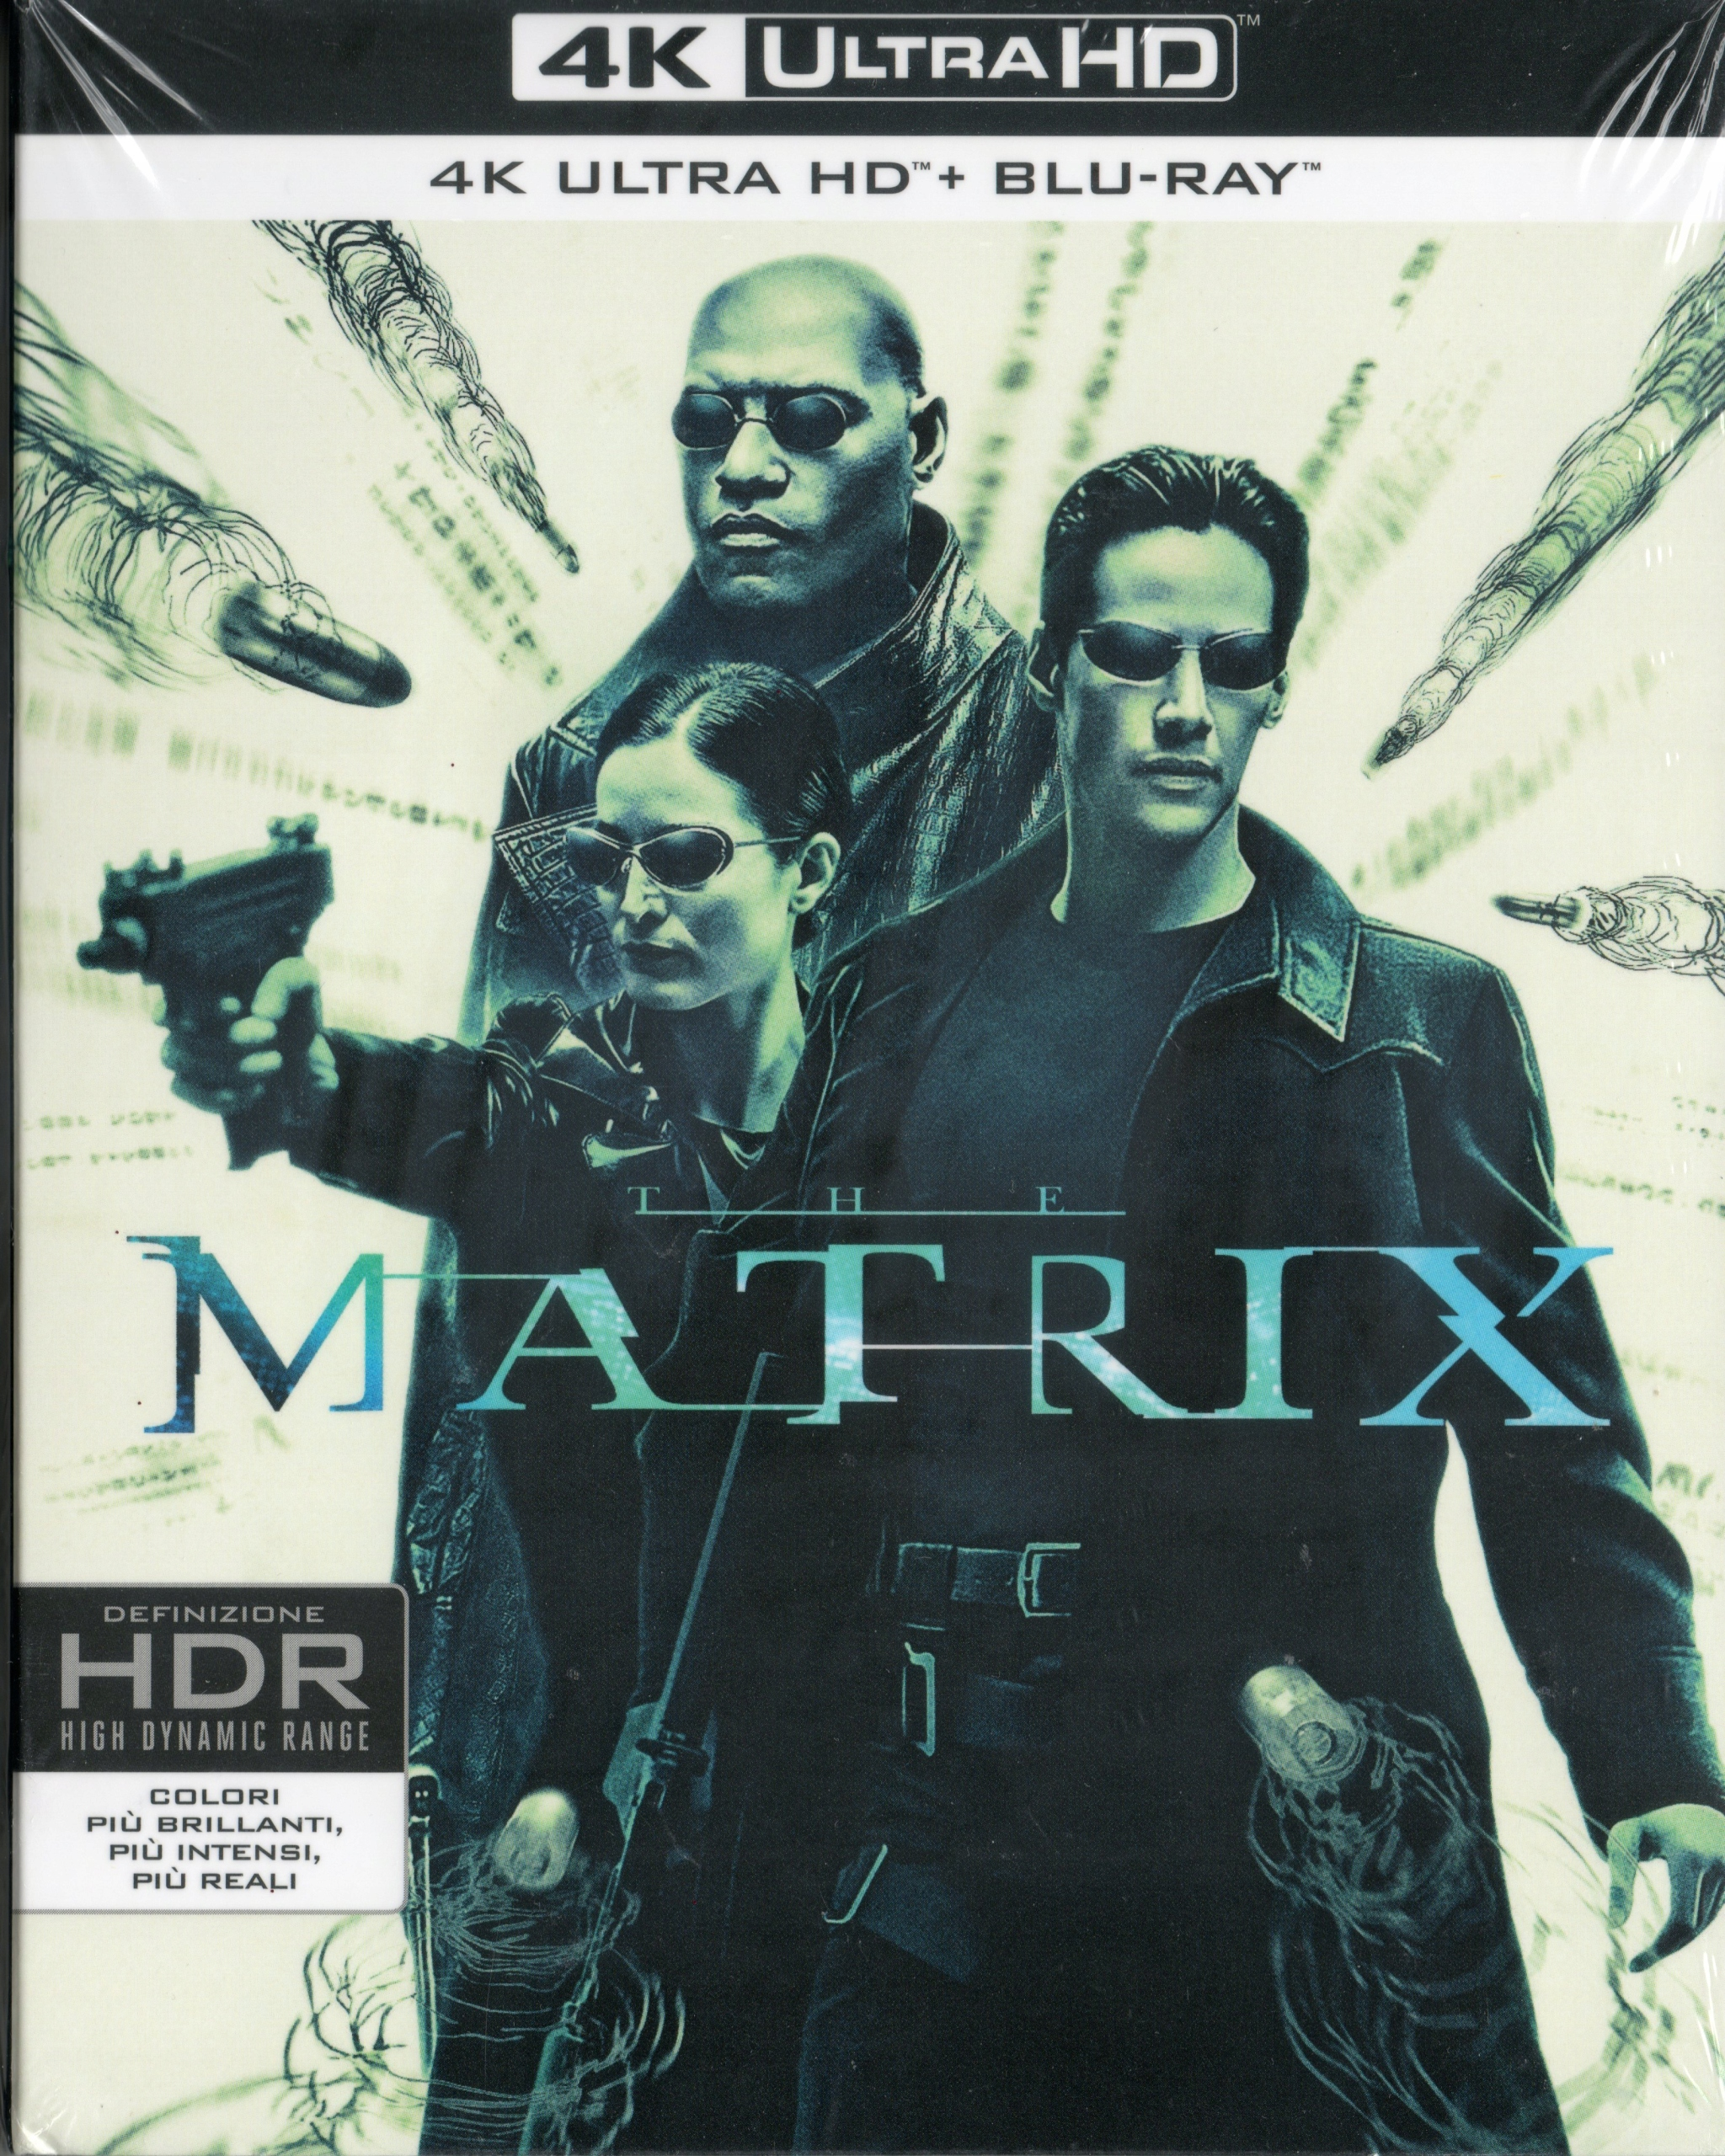 MATRIX 4K UHD ULTRA HD LEKTOR REEVES MOSS WEAVING